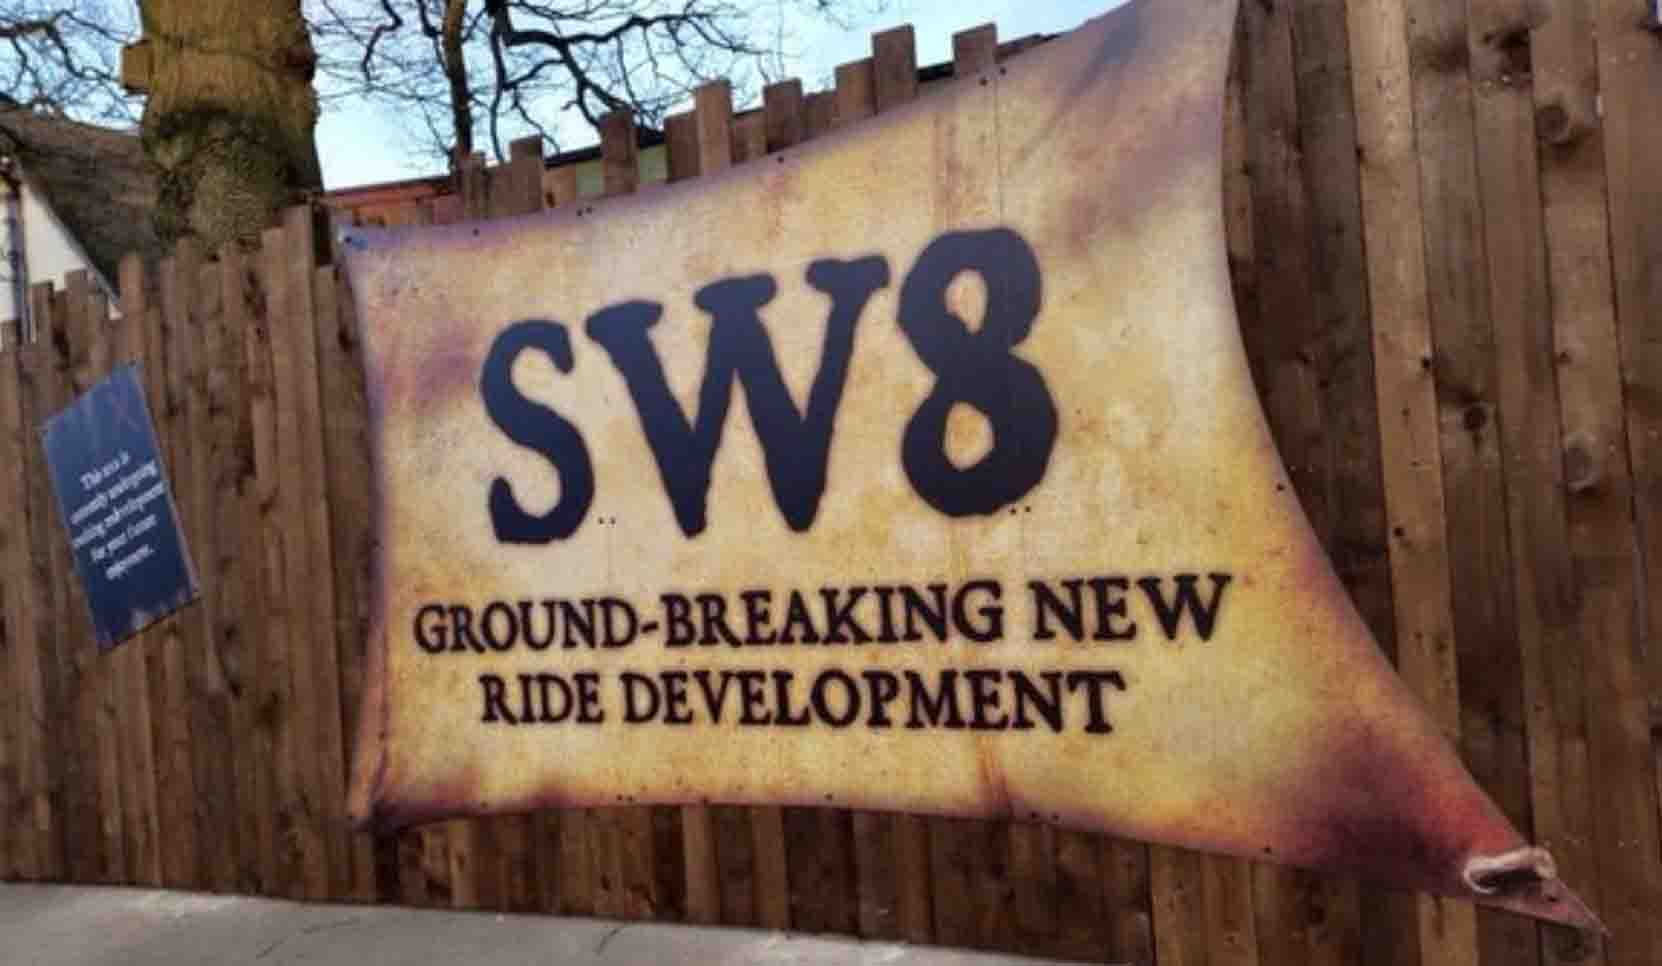 Alton Towers Secret Weapon 8 Has Been Confirmed As A